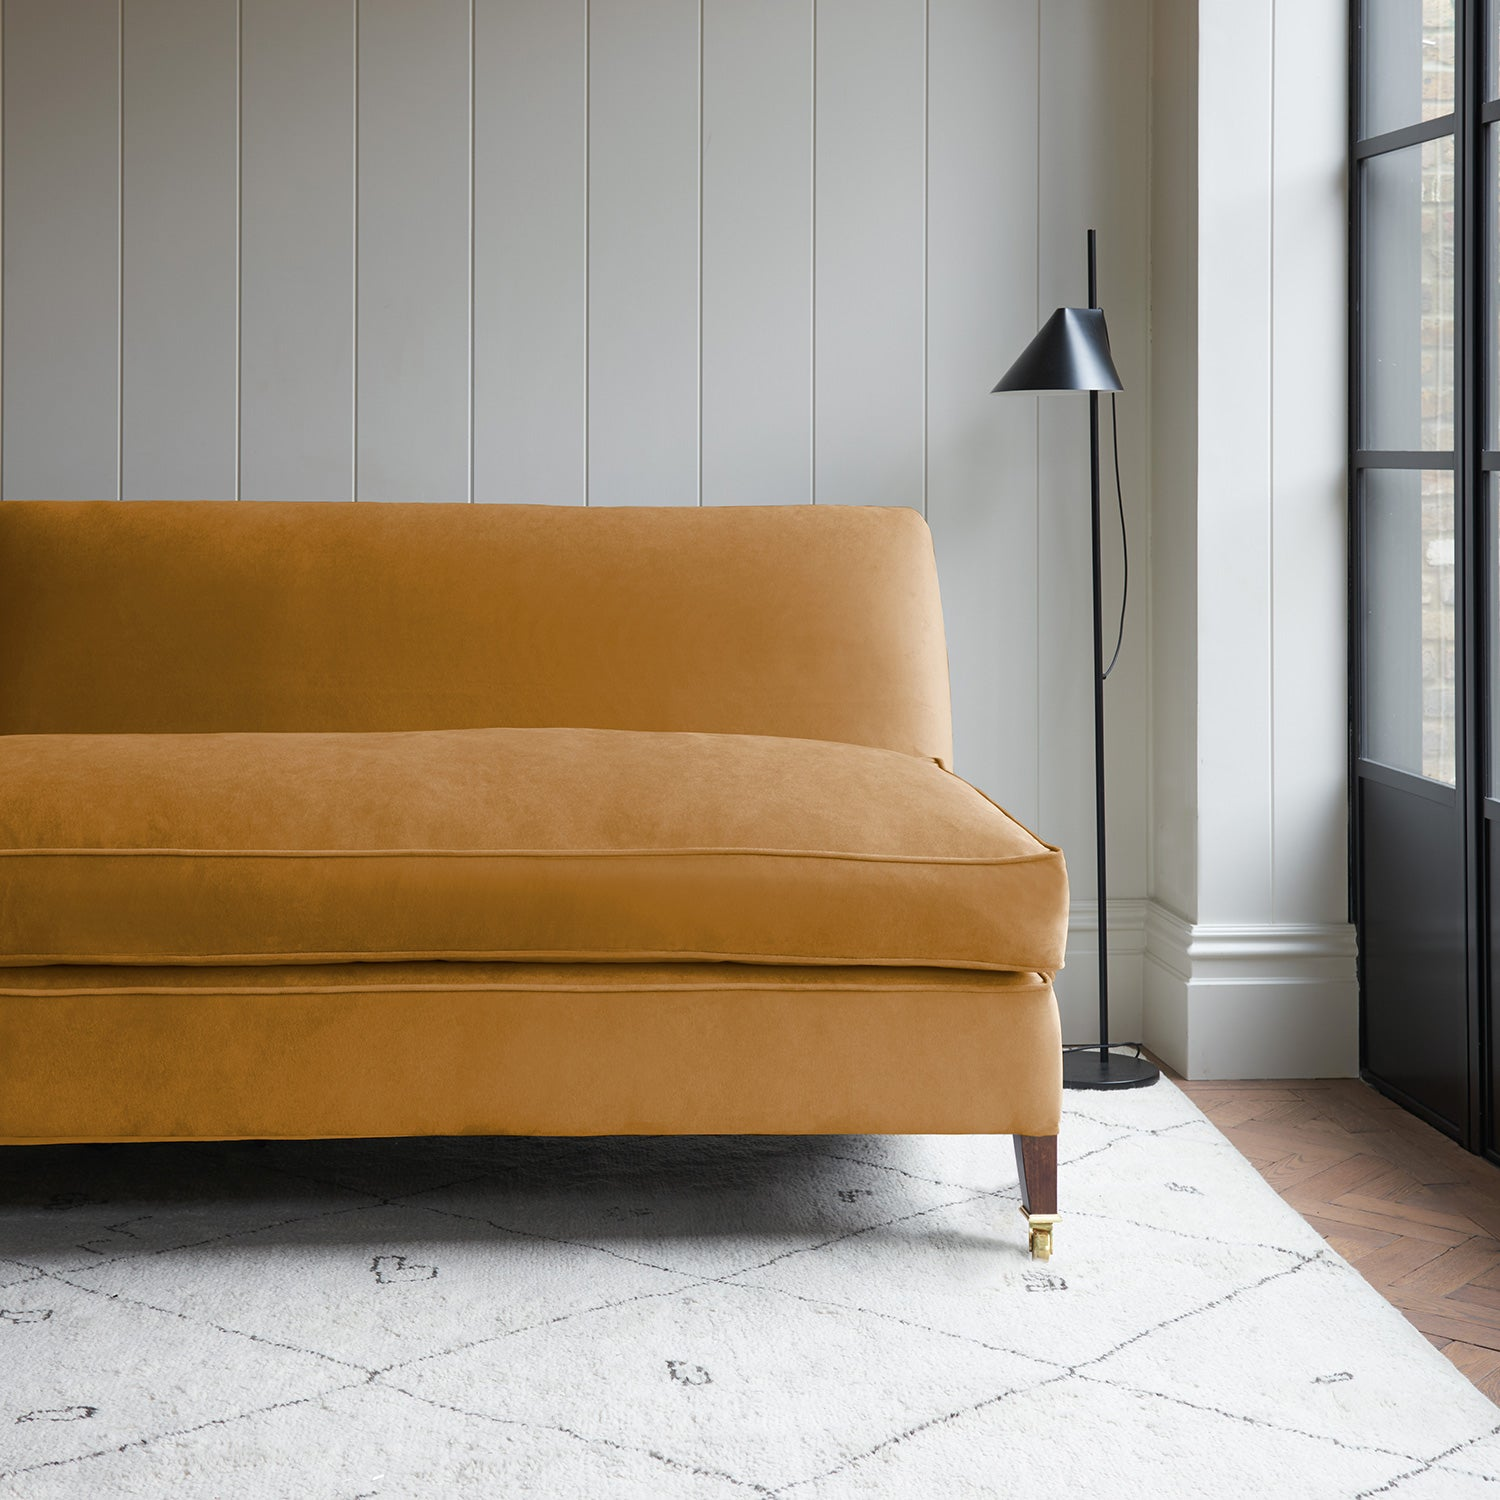 Velvet sofa in a gold velvet fabric with stain resistant finish